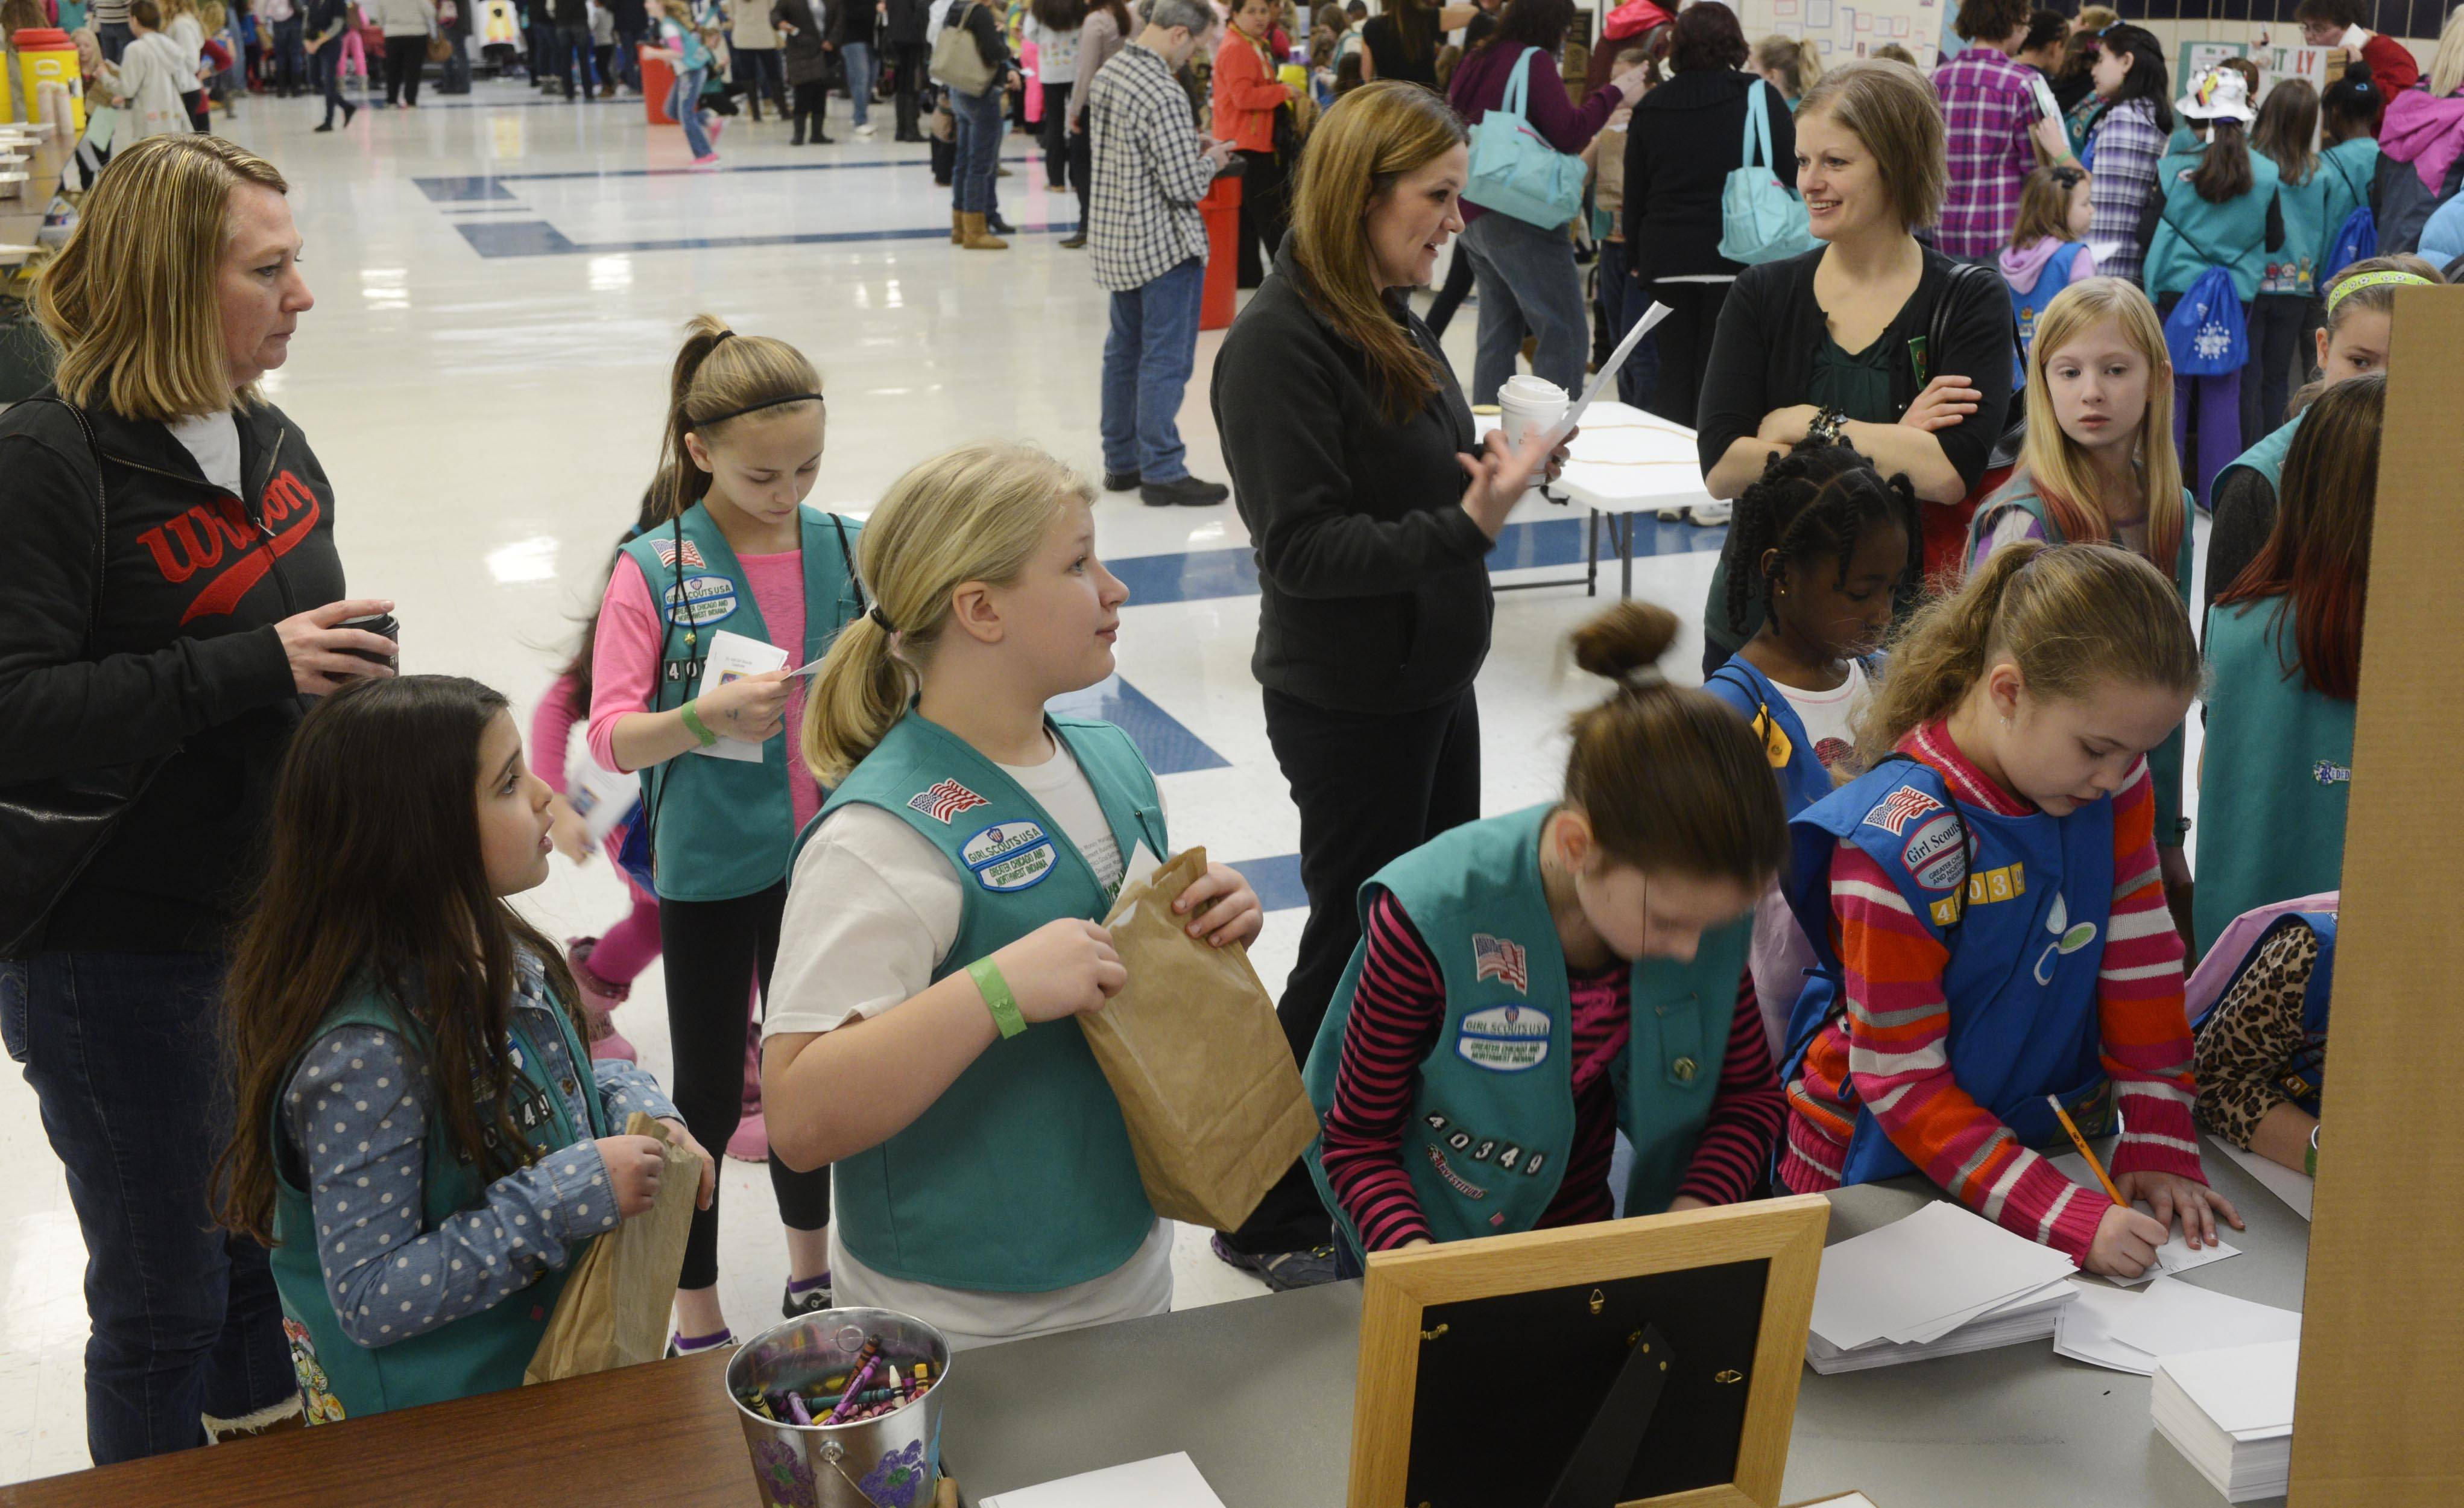 JOE LEWNARD/jlewnard@dailyherald.comGirl Scouts visit booths representing nations throughout the world Saturday morning during International Thinking Day, an international festival of sisterhood in the Conant High School cafeteria.